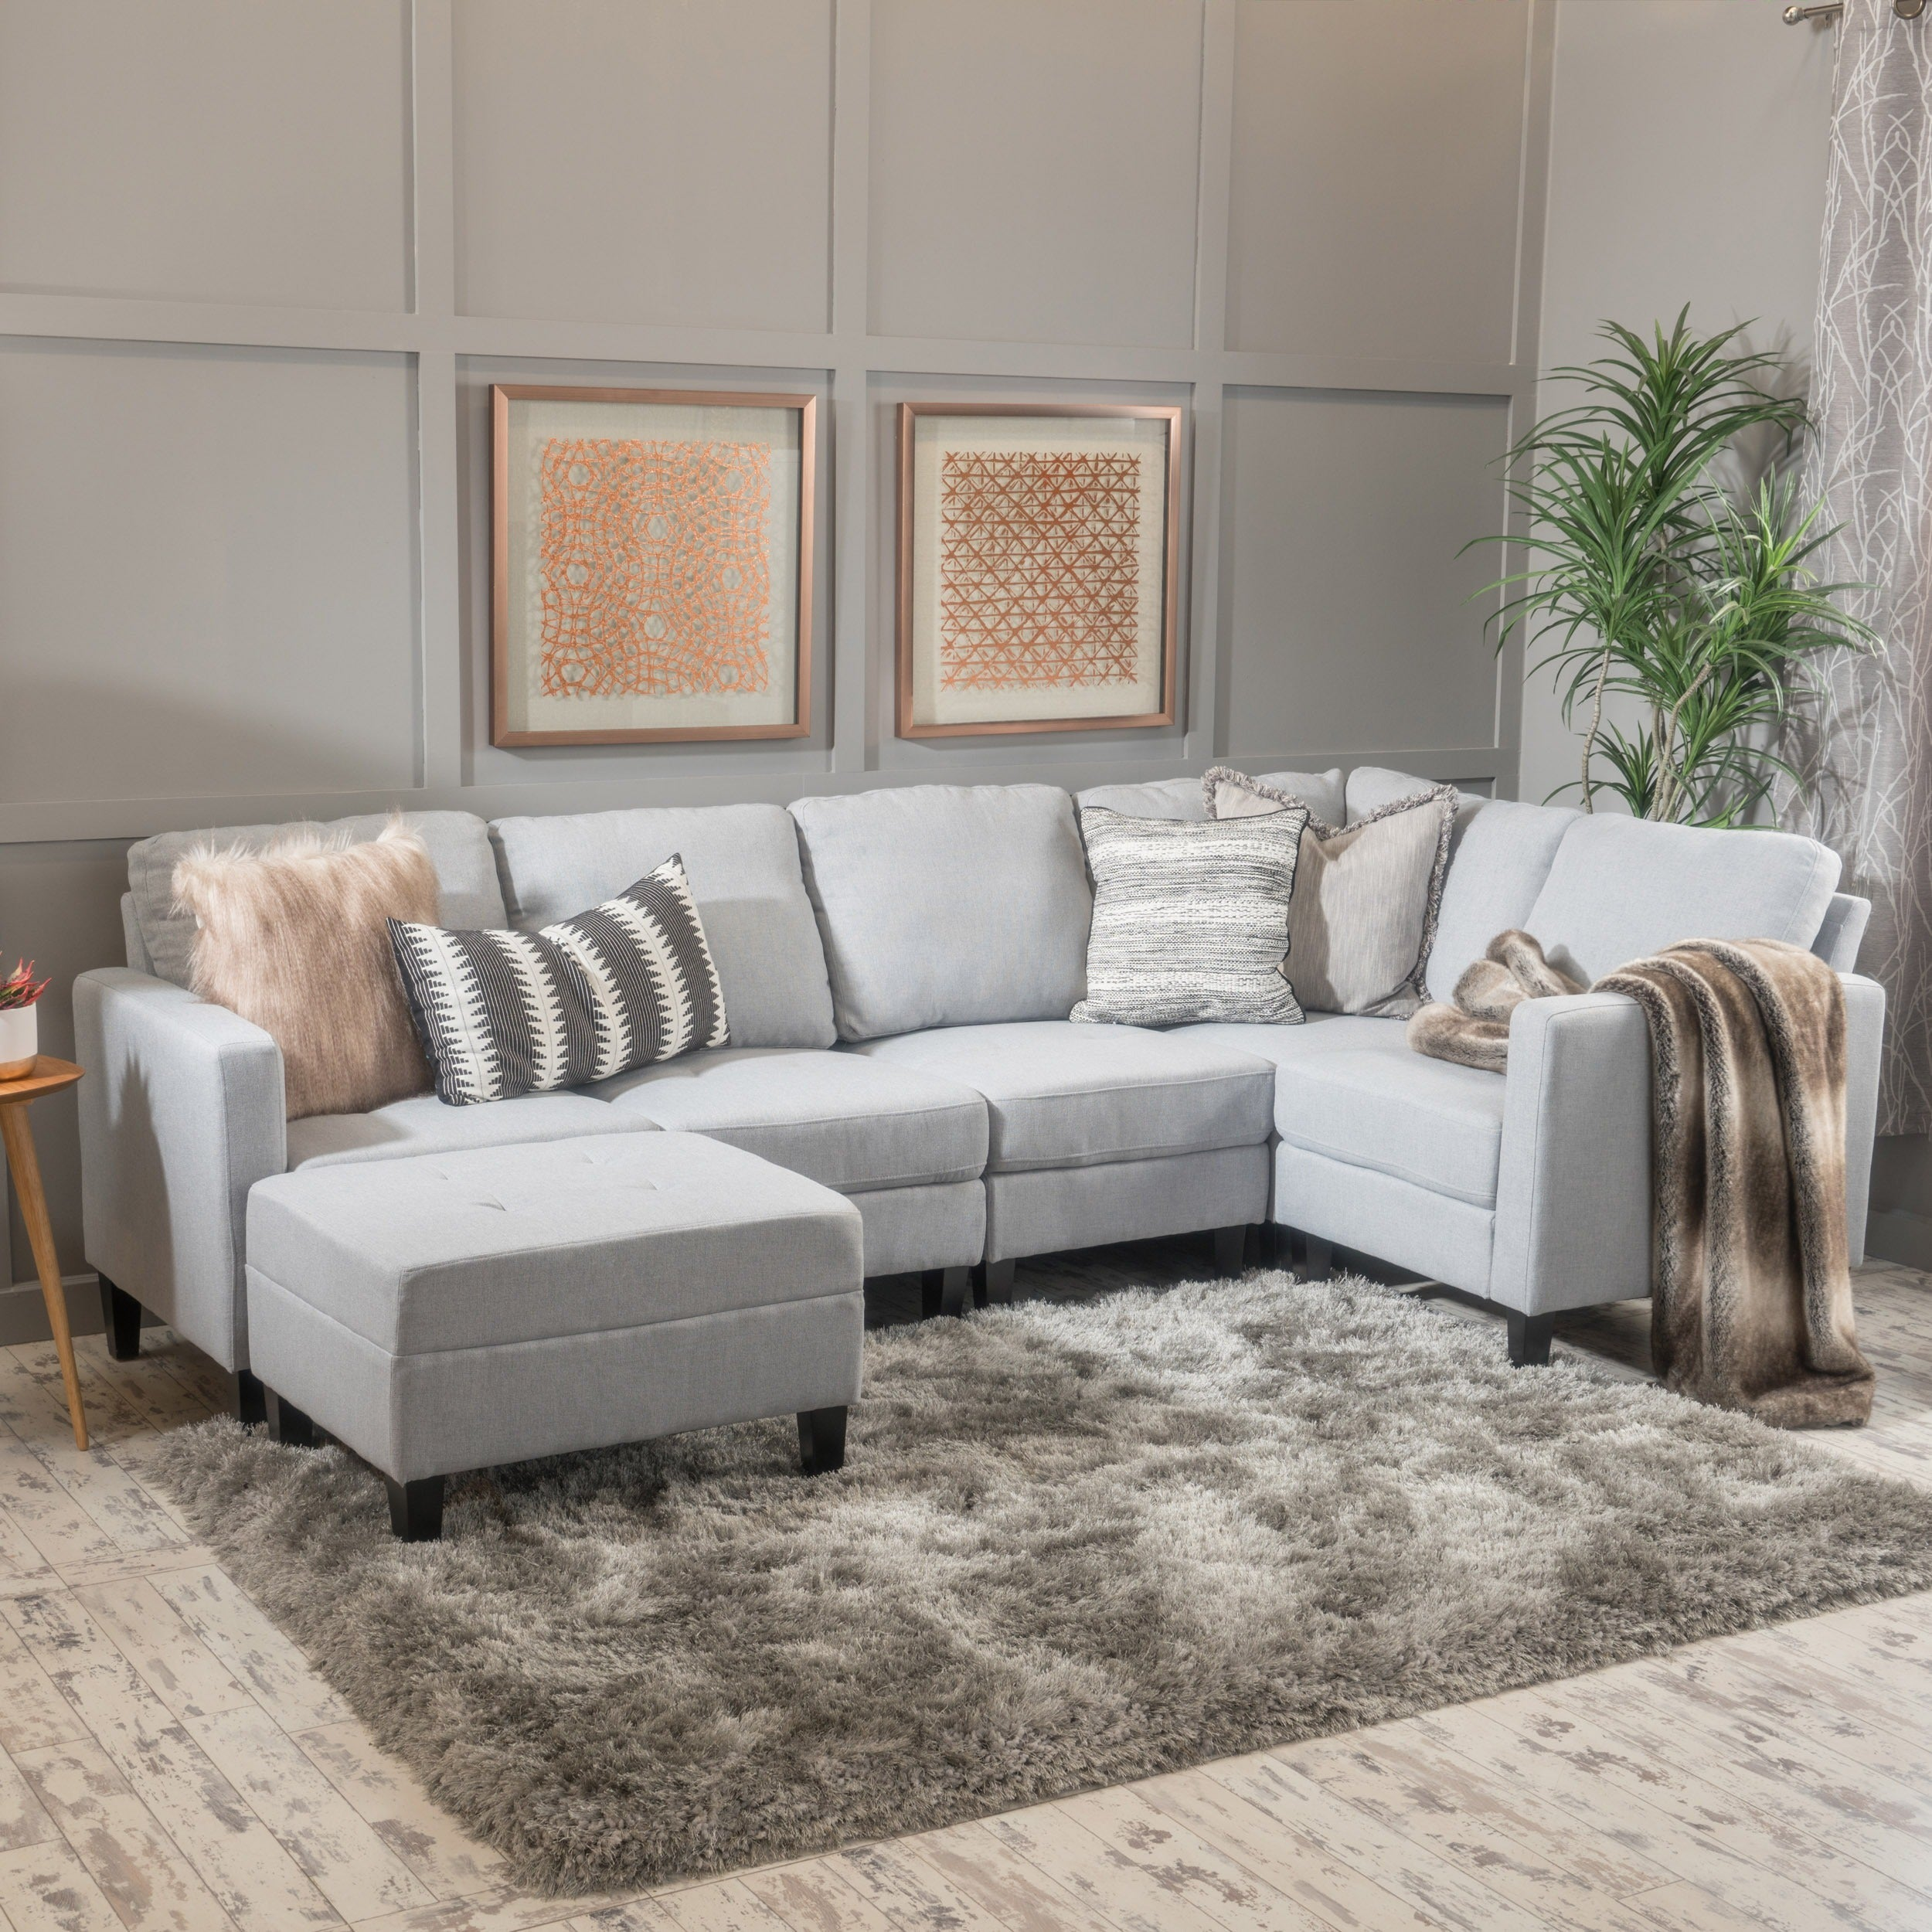 Zahra 6 Piece Fabric Sofa Sectional With Ottoman By Christopher Knight Home On Free Shipping Today 14057283